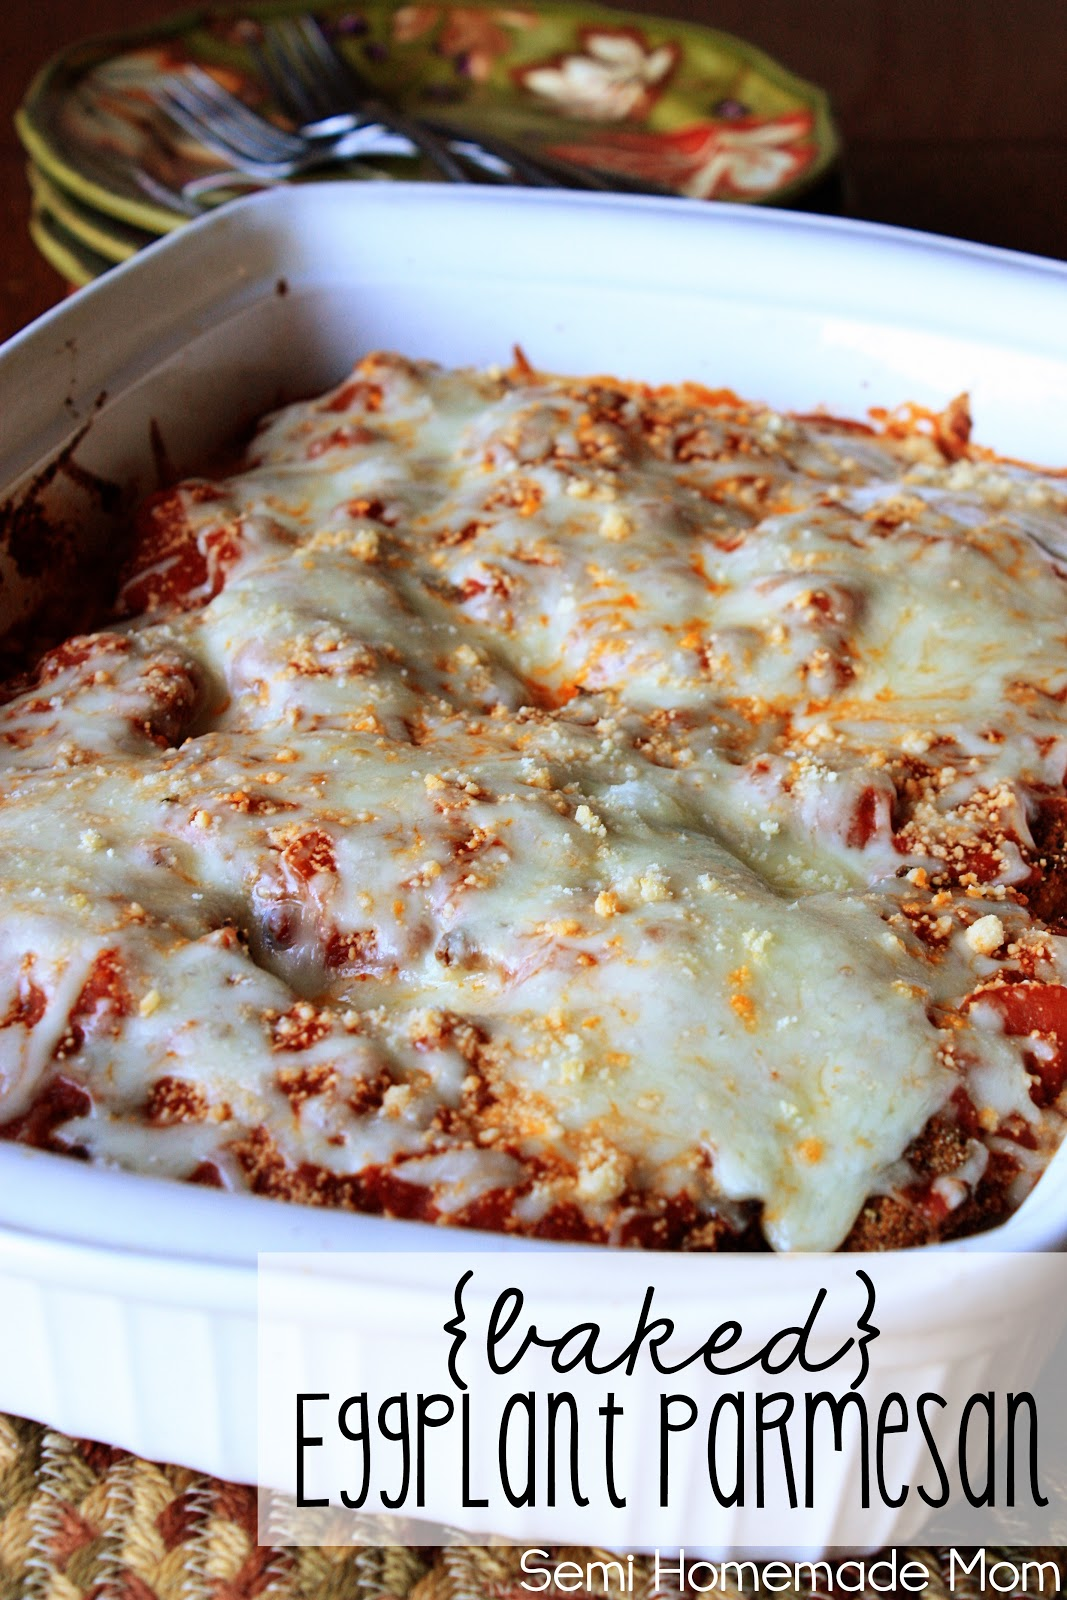 Mostly Homemade Mom: Baked Eggplant Parmesan